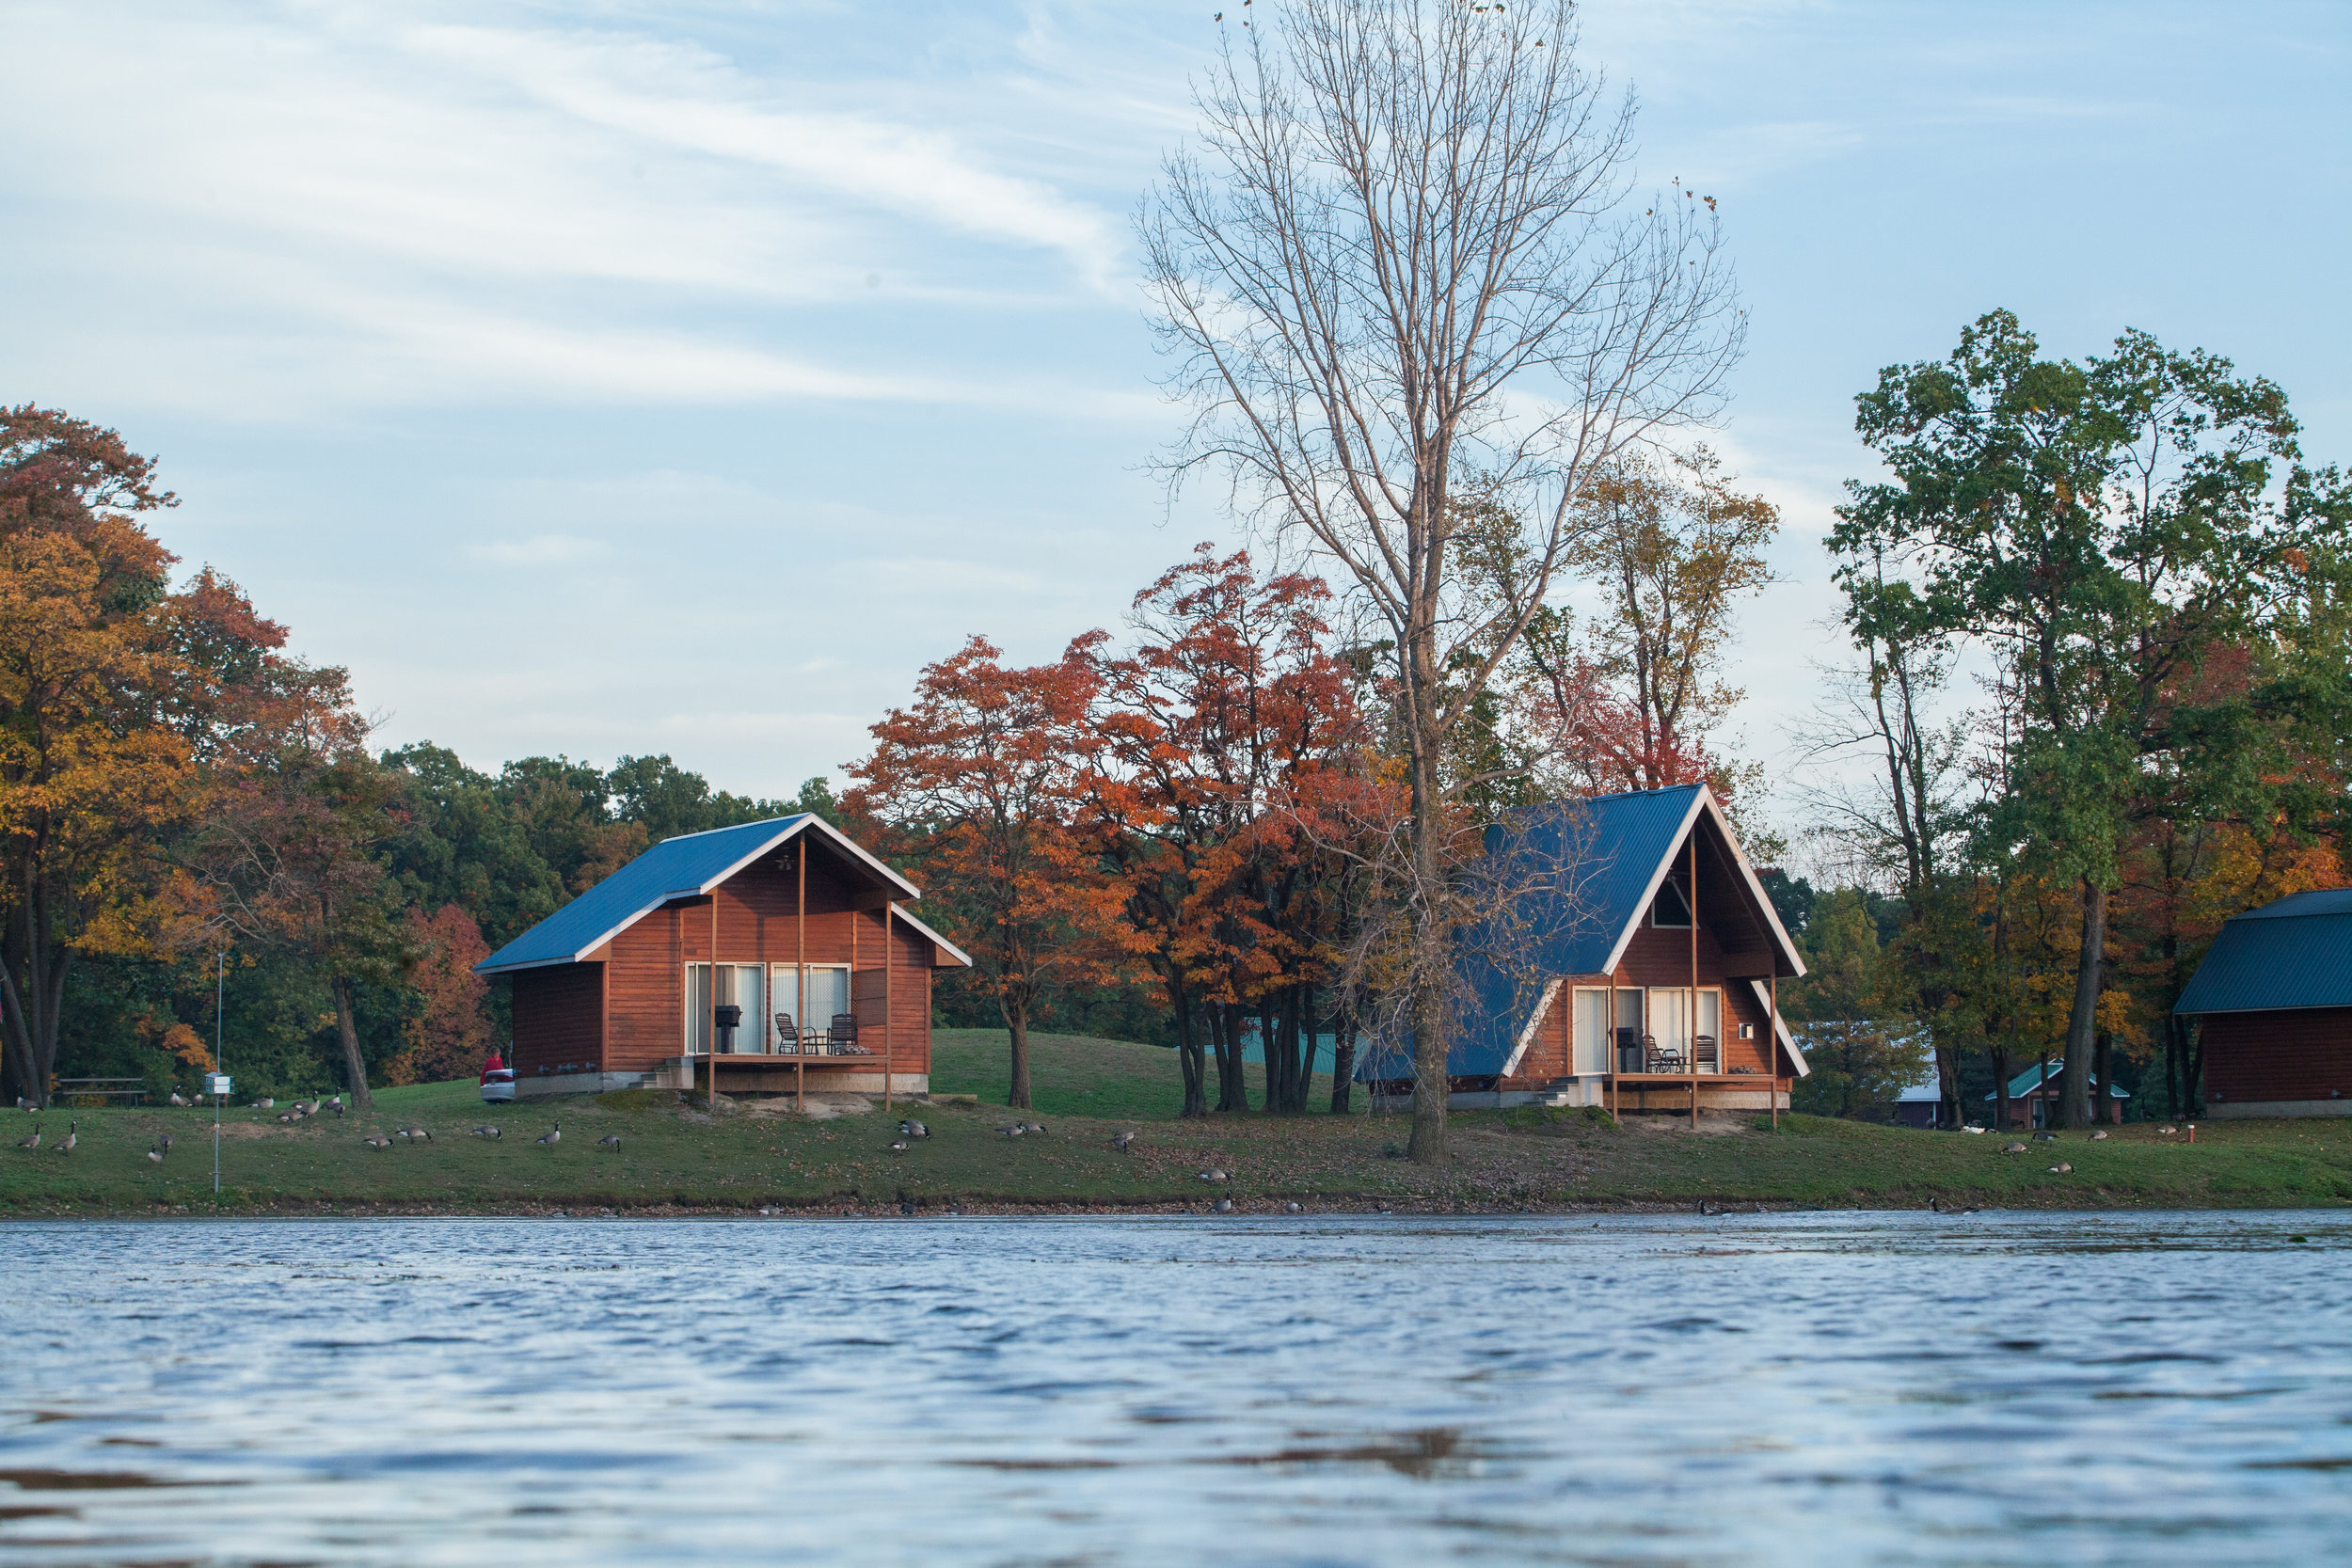 Two cabins on the lake at Serenity Springs.